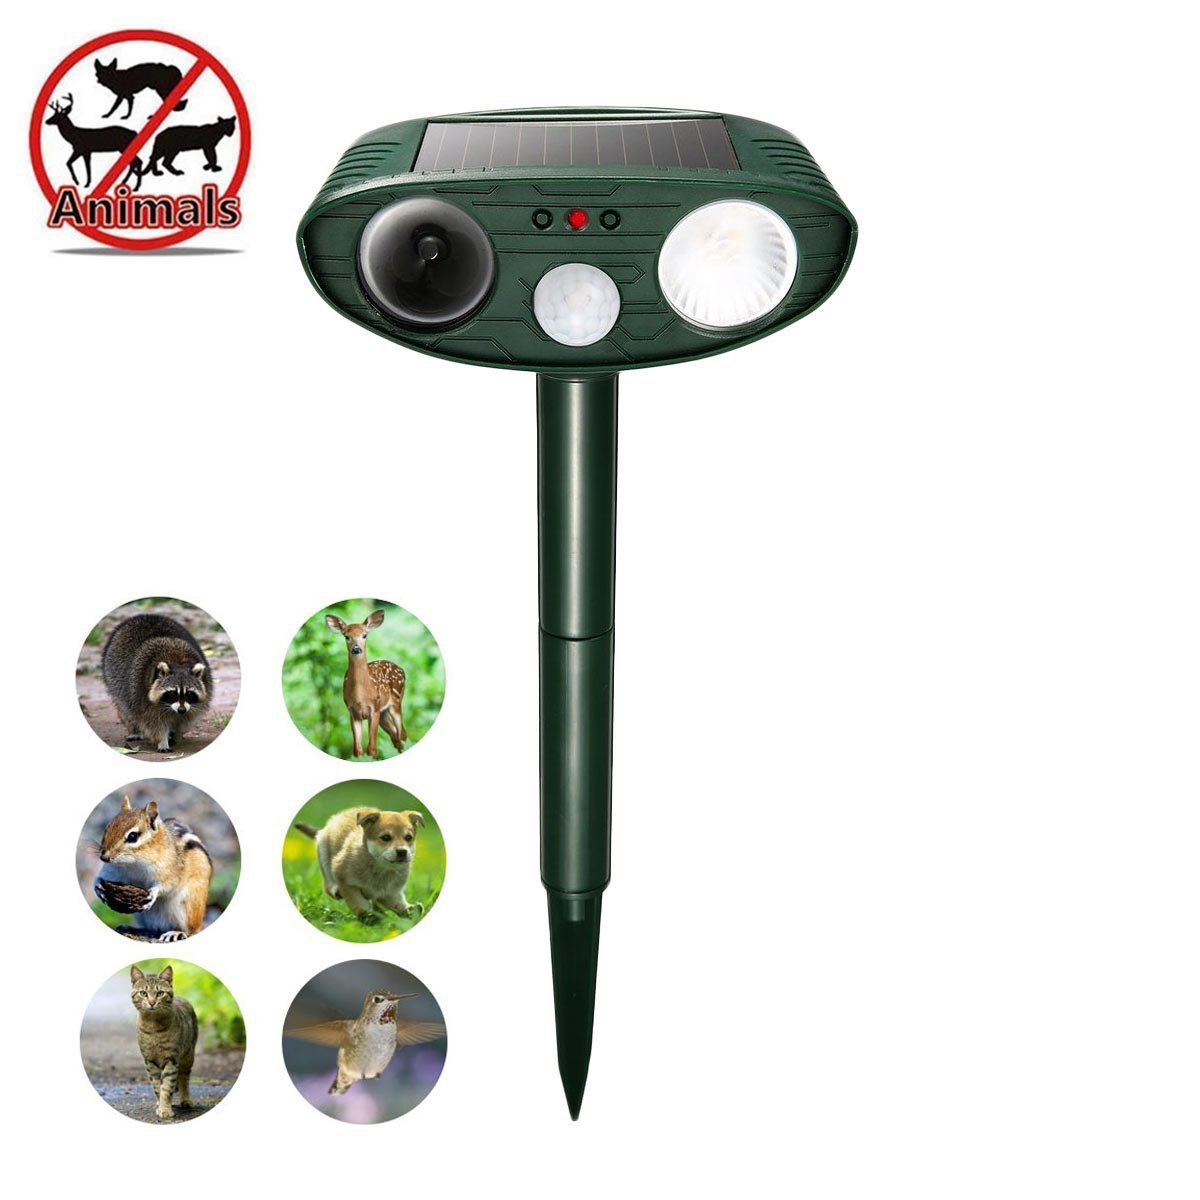 Ultrasonic Dog Repellent, Solar Animal Repeller with Motion Activated and White Lights, Outdoor Waterproof Yard, Garden, Lawn Repellent for Dogs, Cats,Rodent, Deer, Raccoon, Squirrels